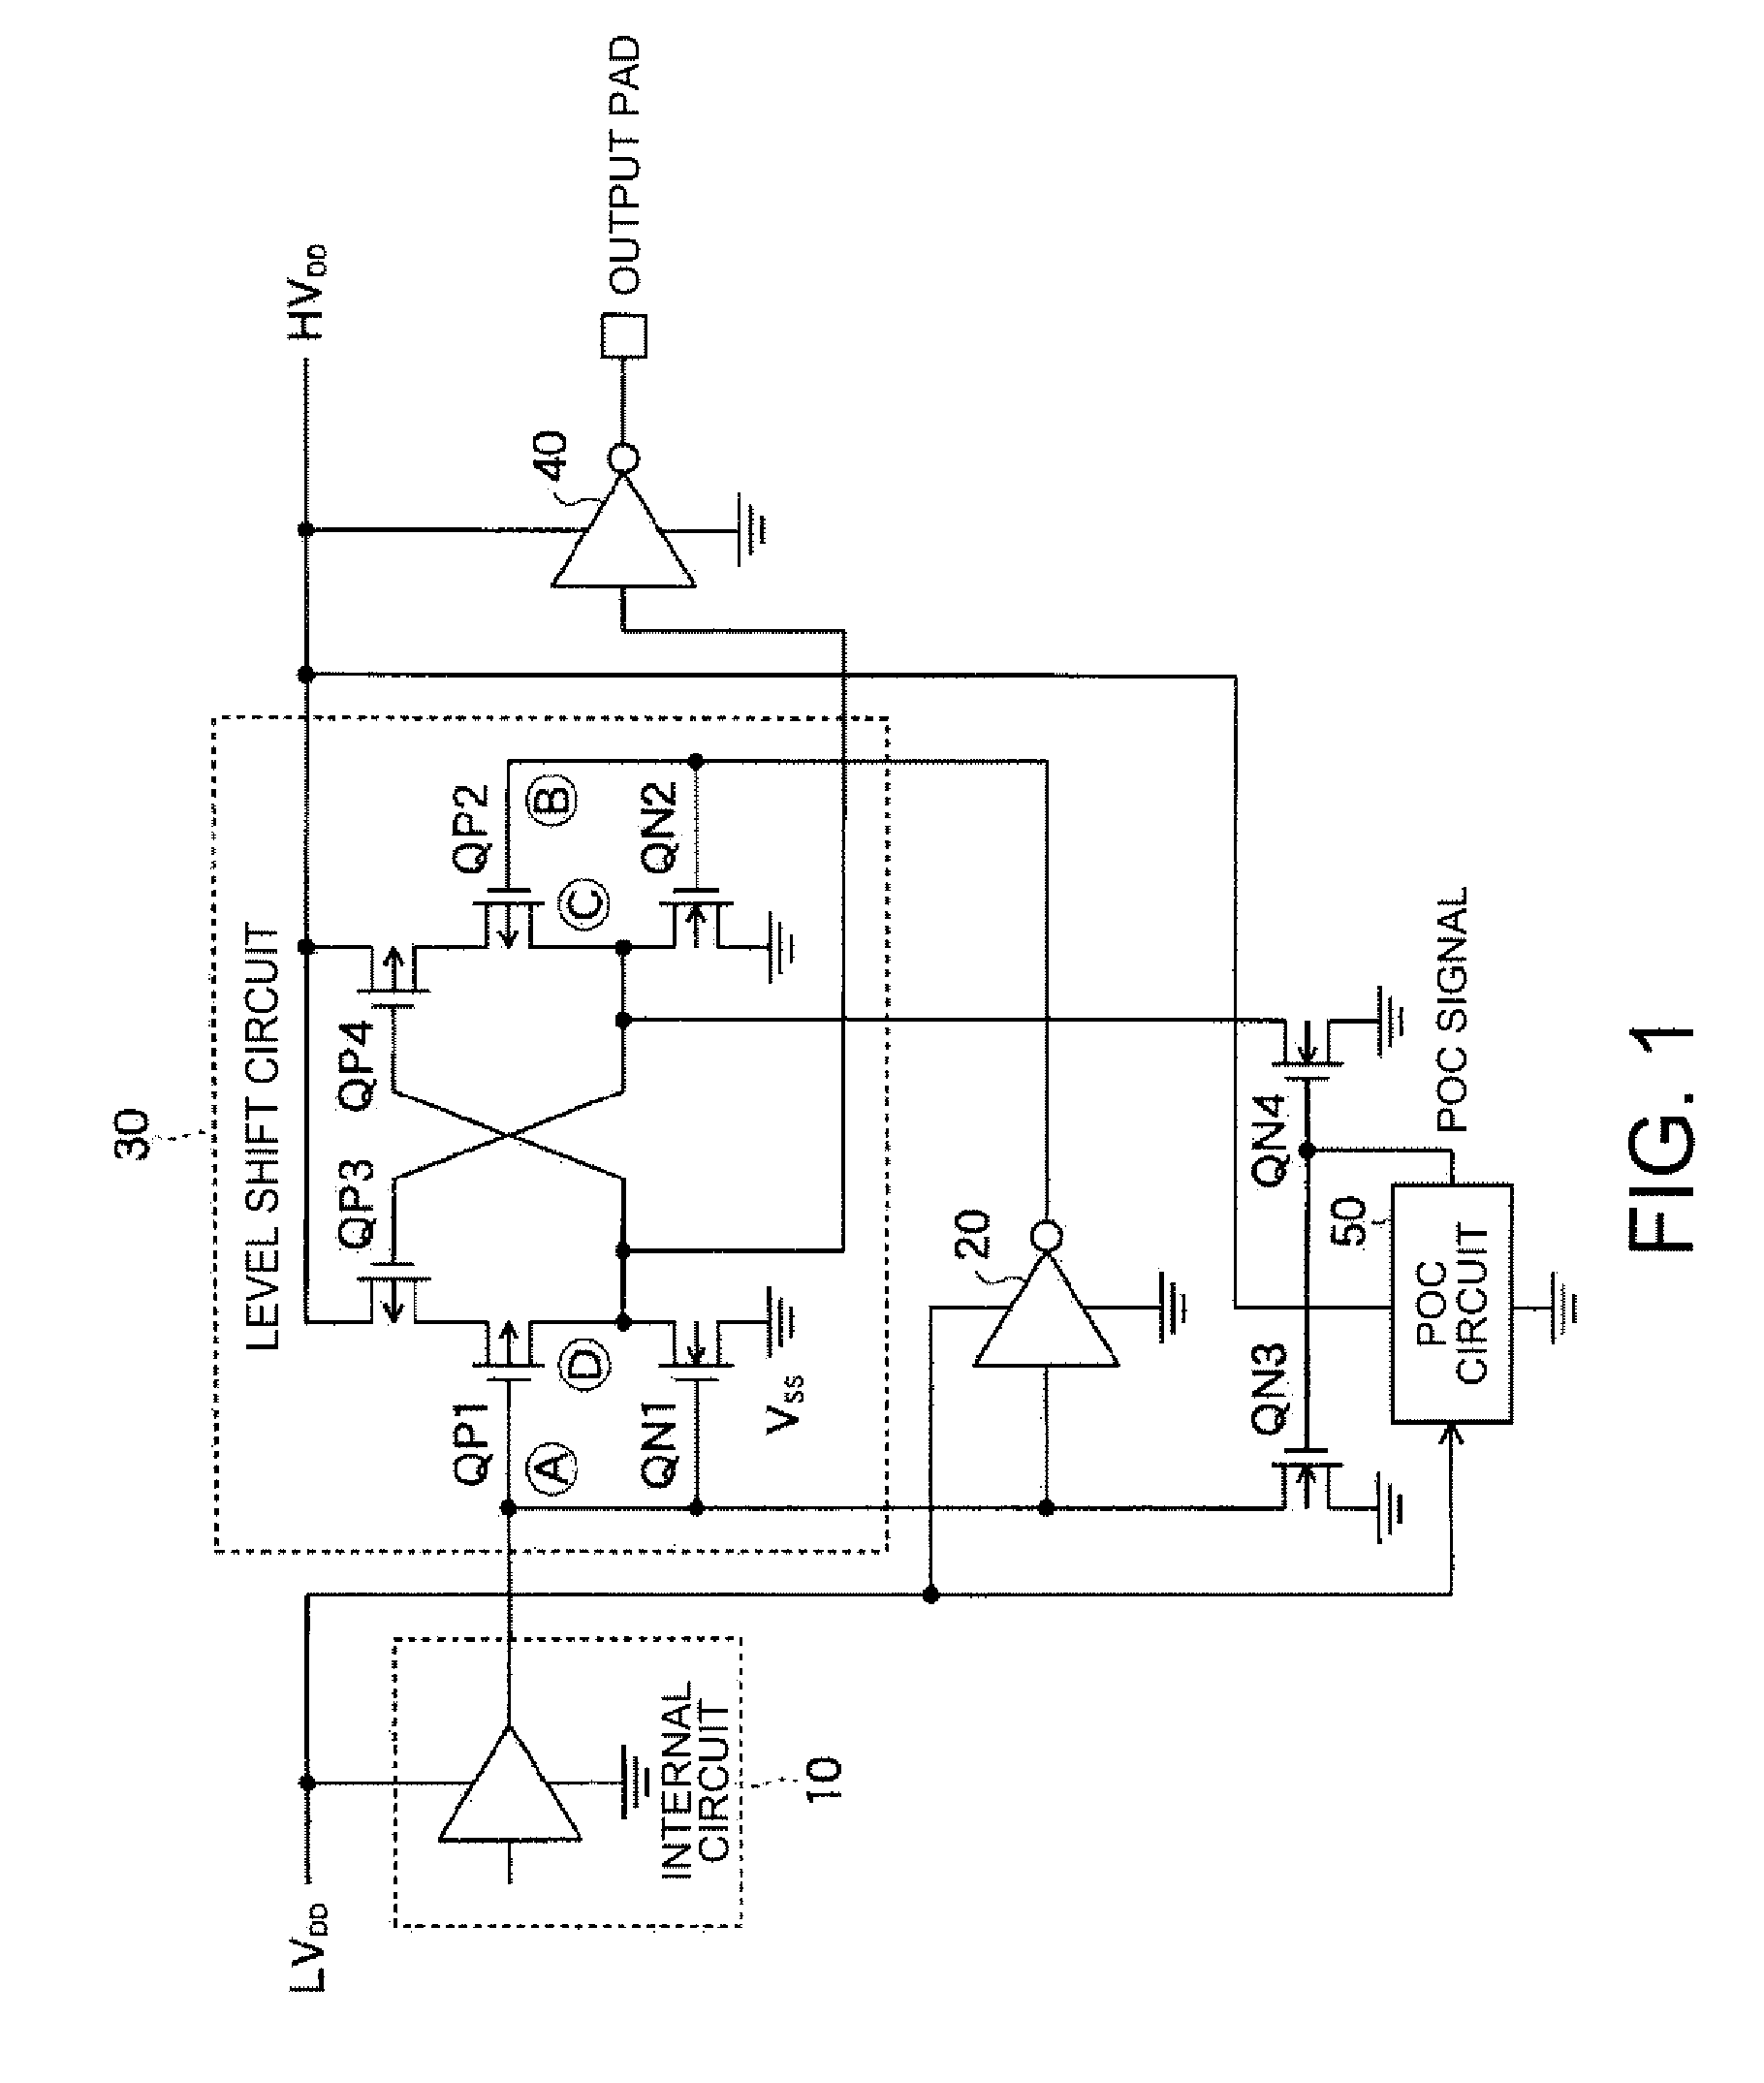 Patent Us20060279346 Semiconductor Integrated Circuit Google Patents Figure 1 Diagram For Level Shifter Drawing